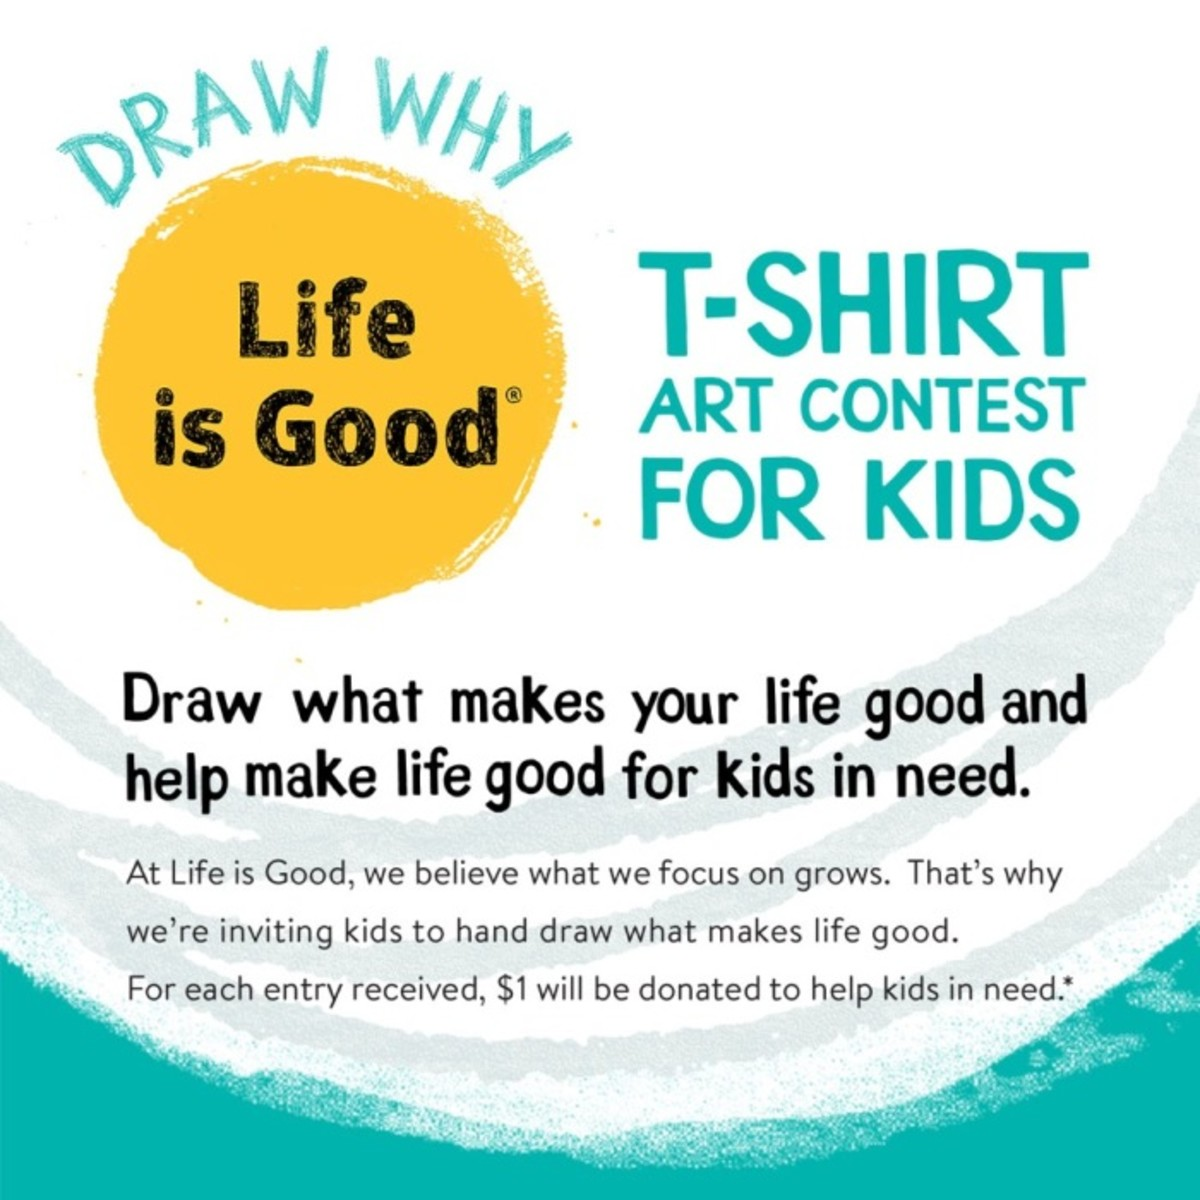 life is good art contest